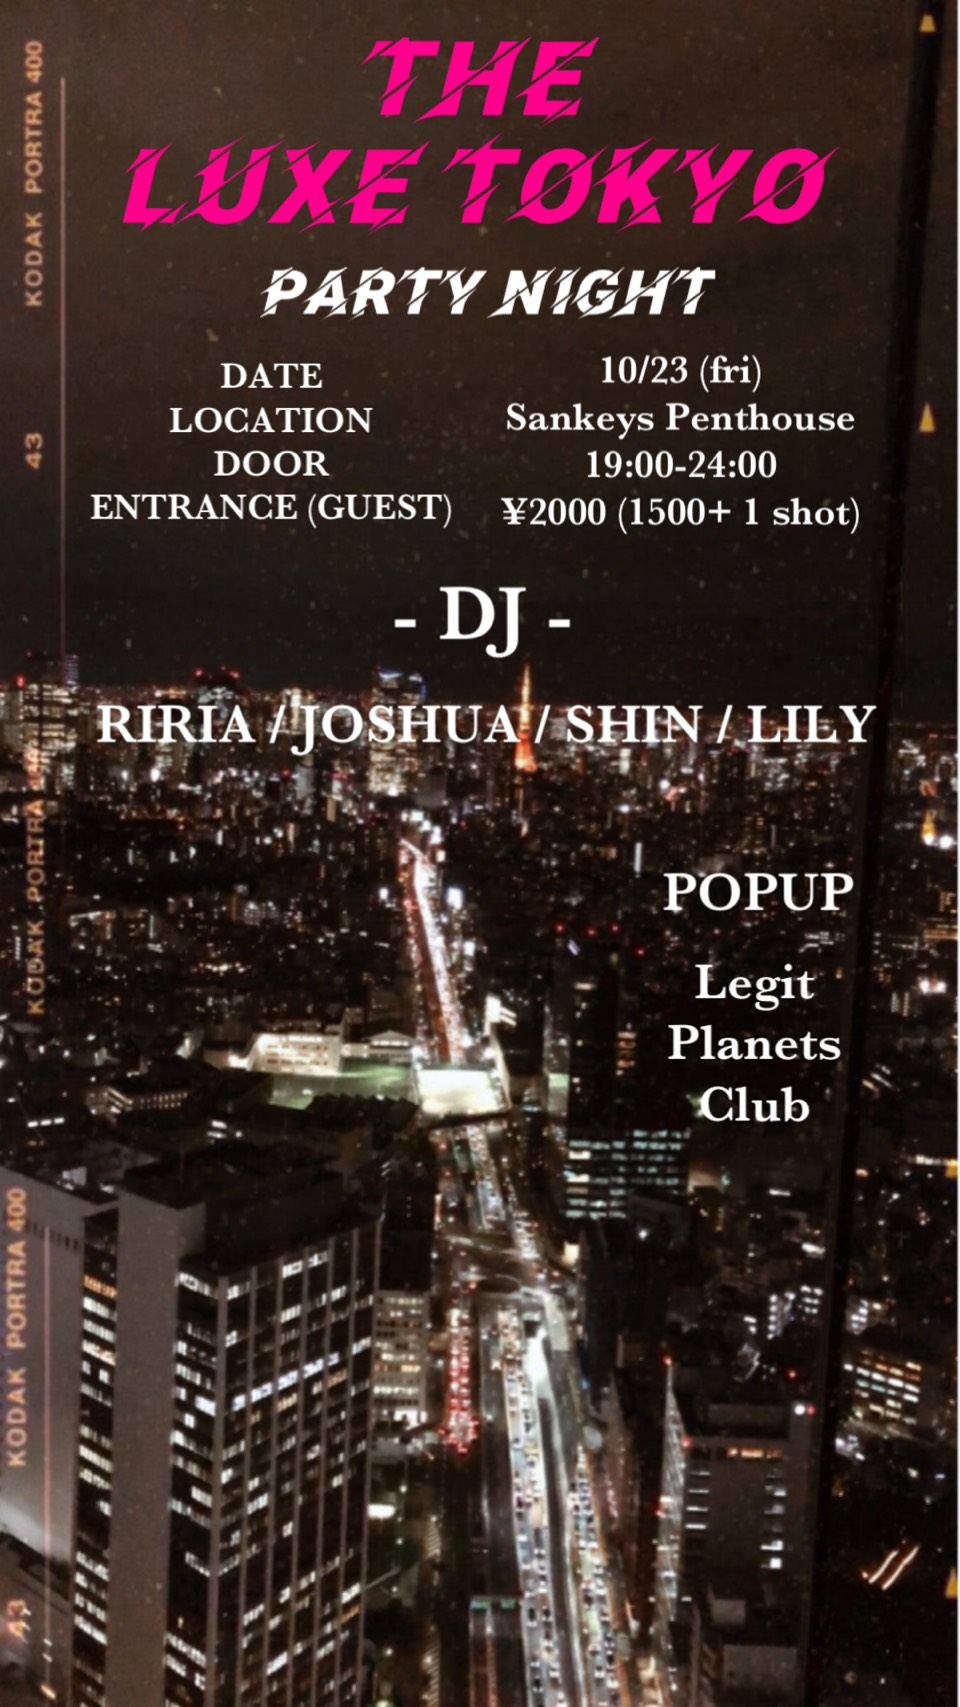 THE LUXE TOKYO NIGHT